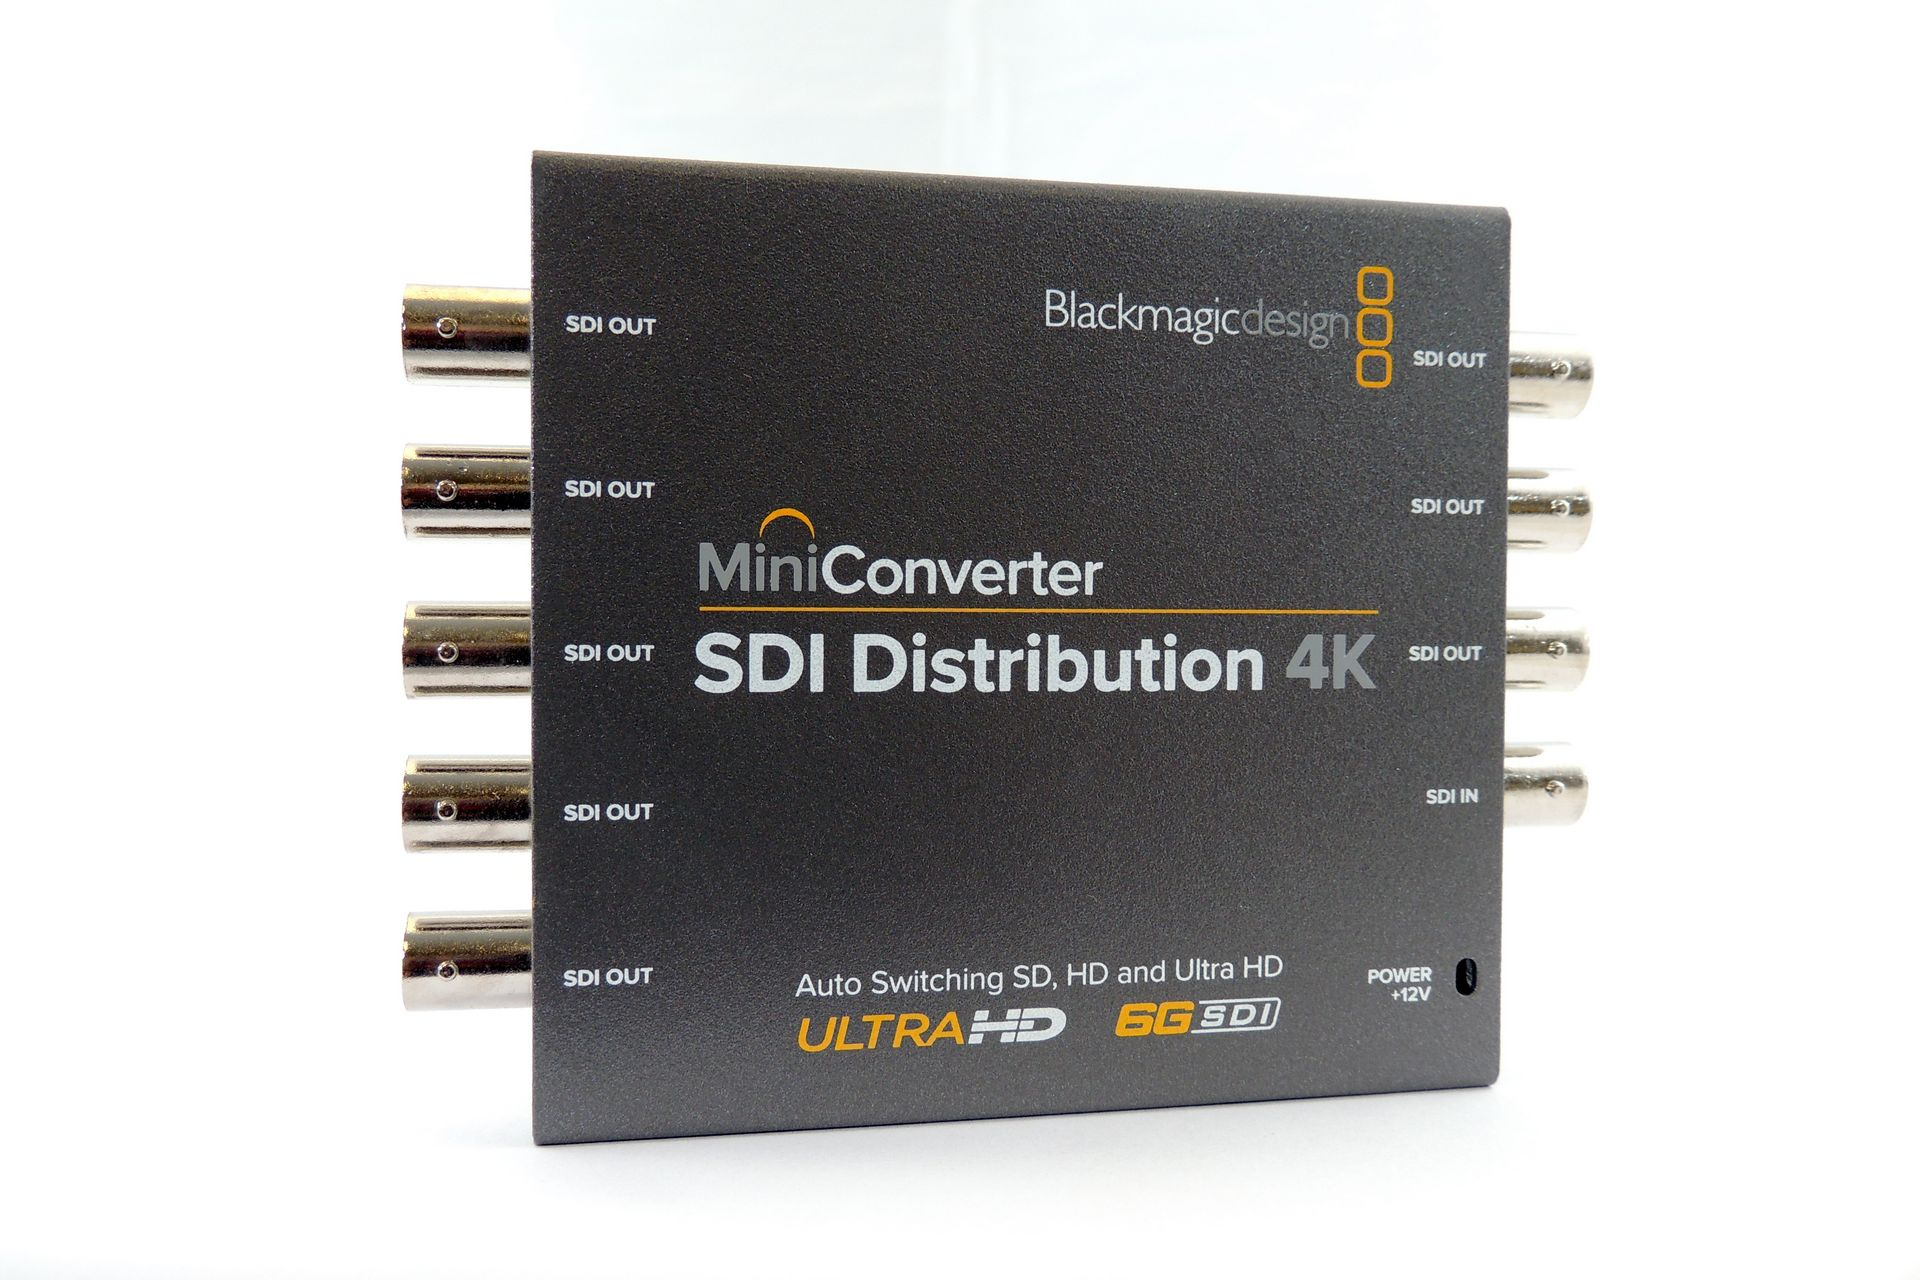 BLACK MAGIC DESIGN MINI CONVERTER – 1 IN 8 OUT SDI DISTRIBUTION 4K